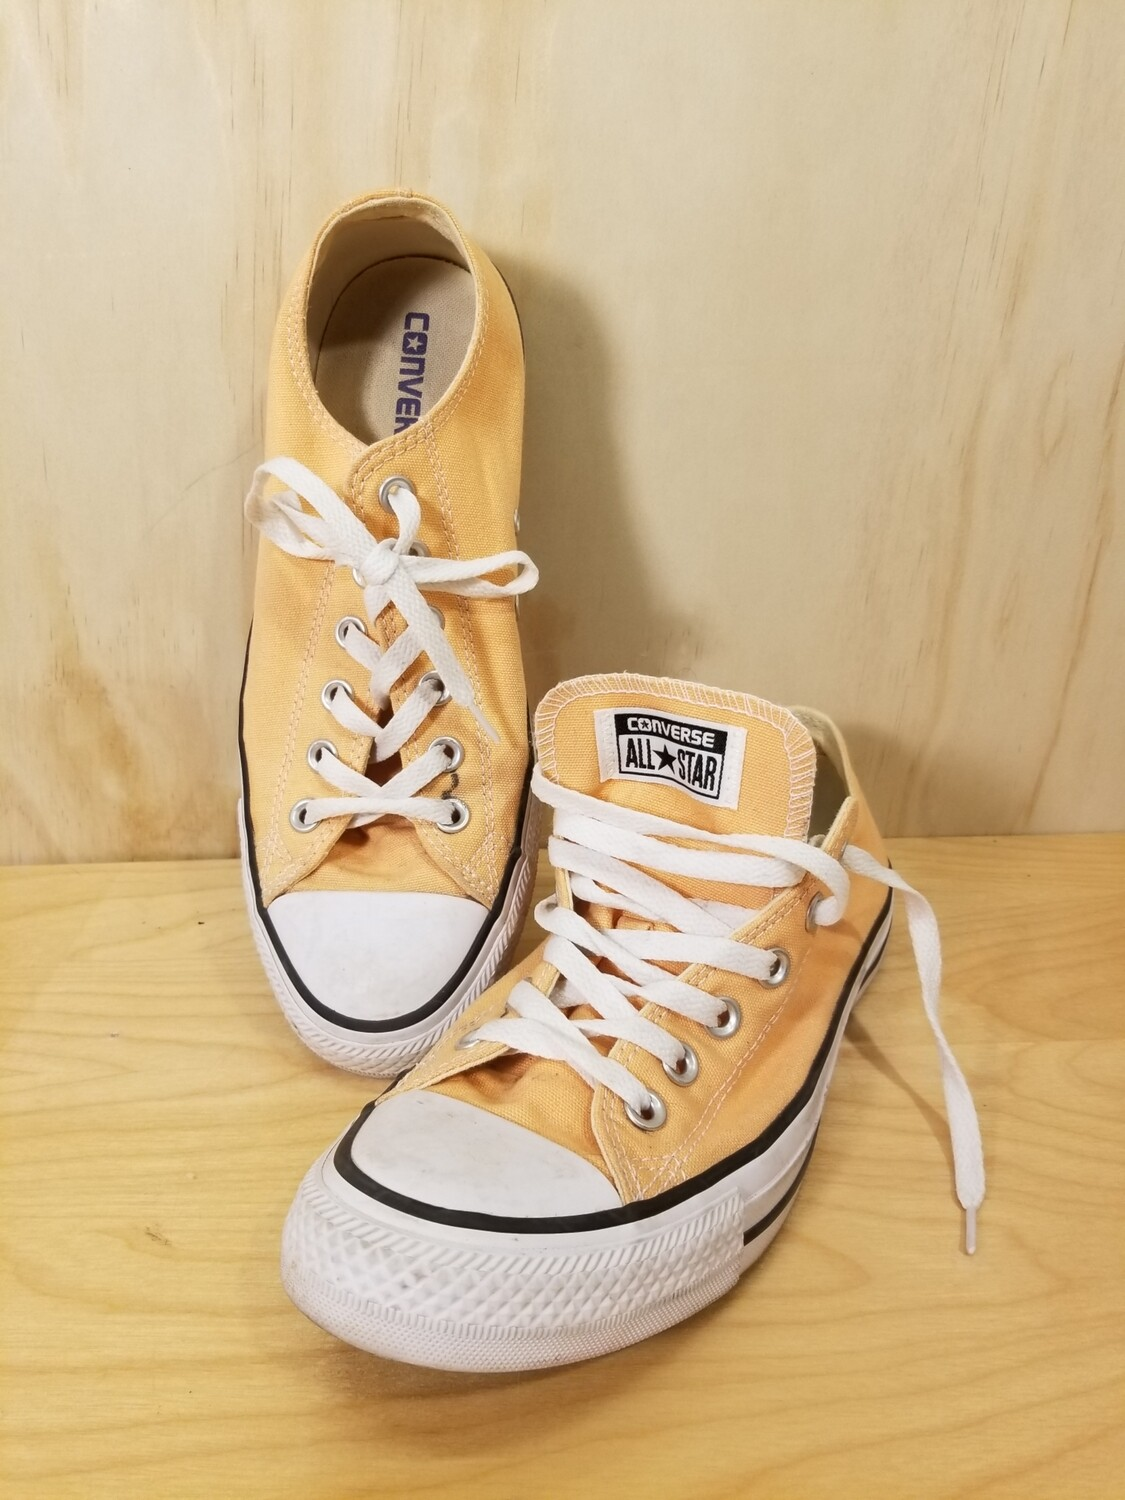 Peach Colored Converse Shoes